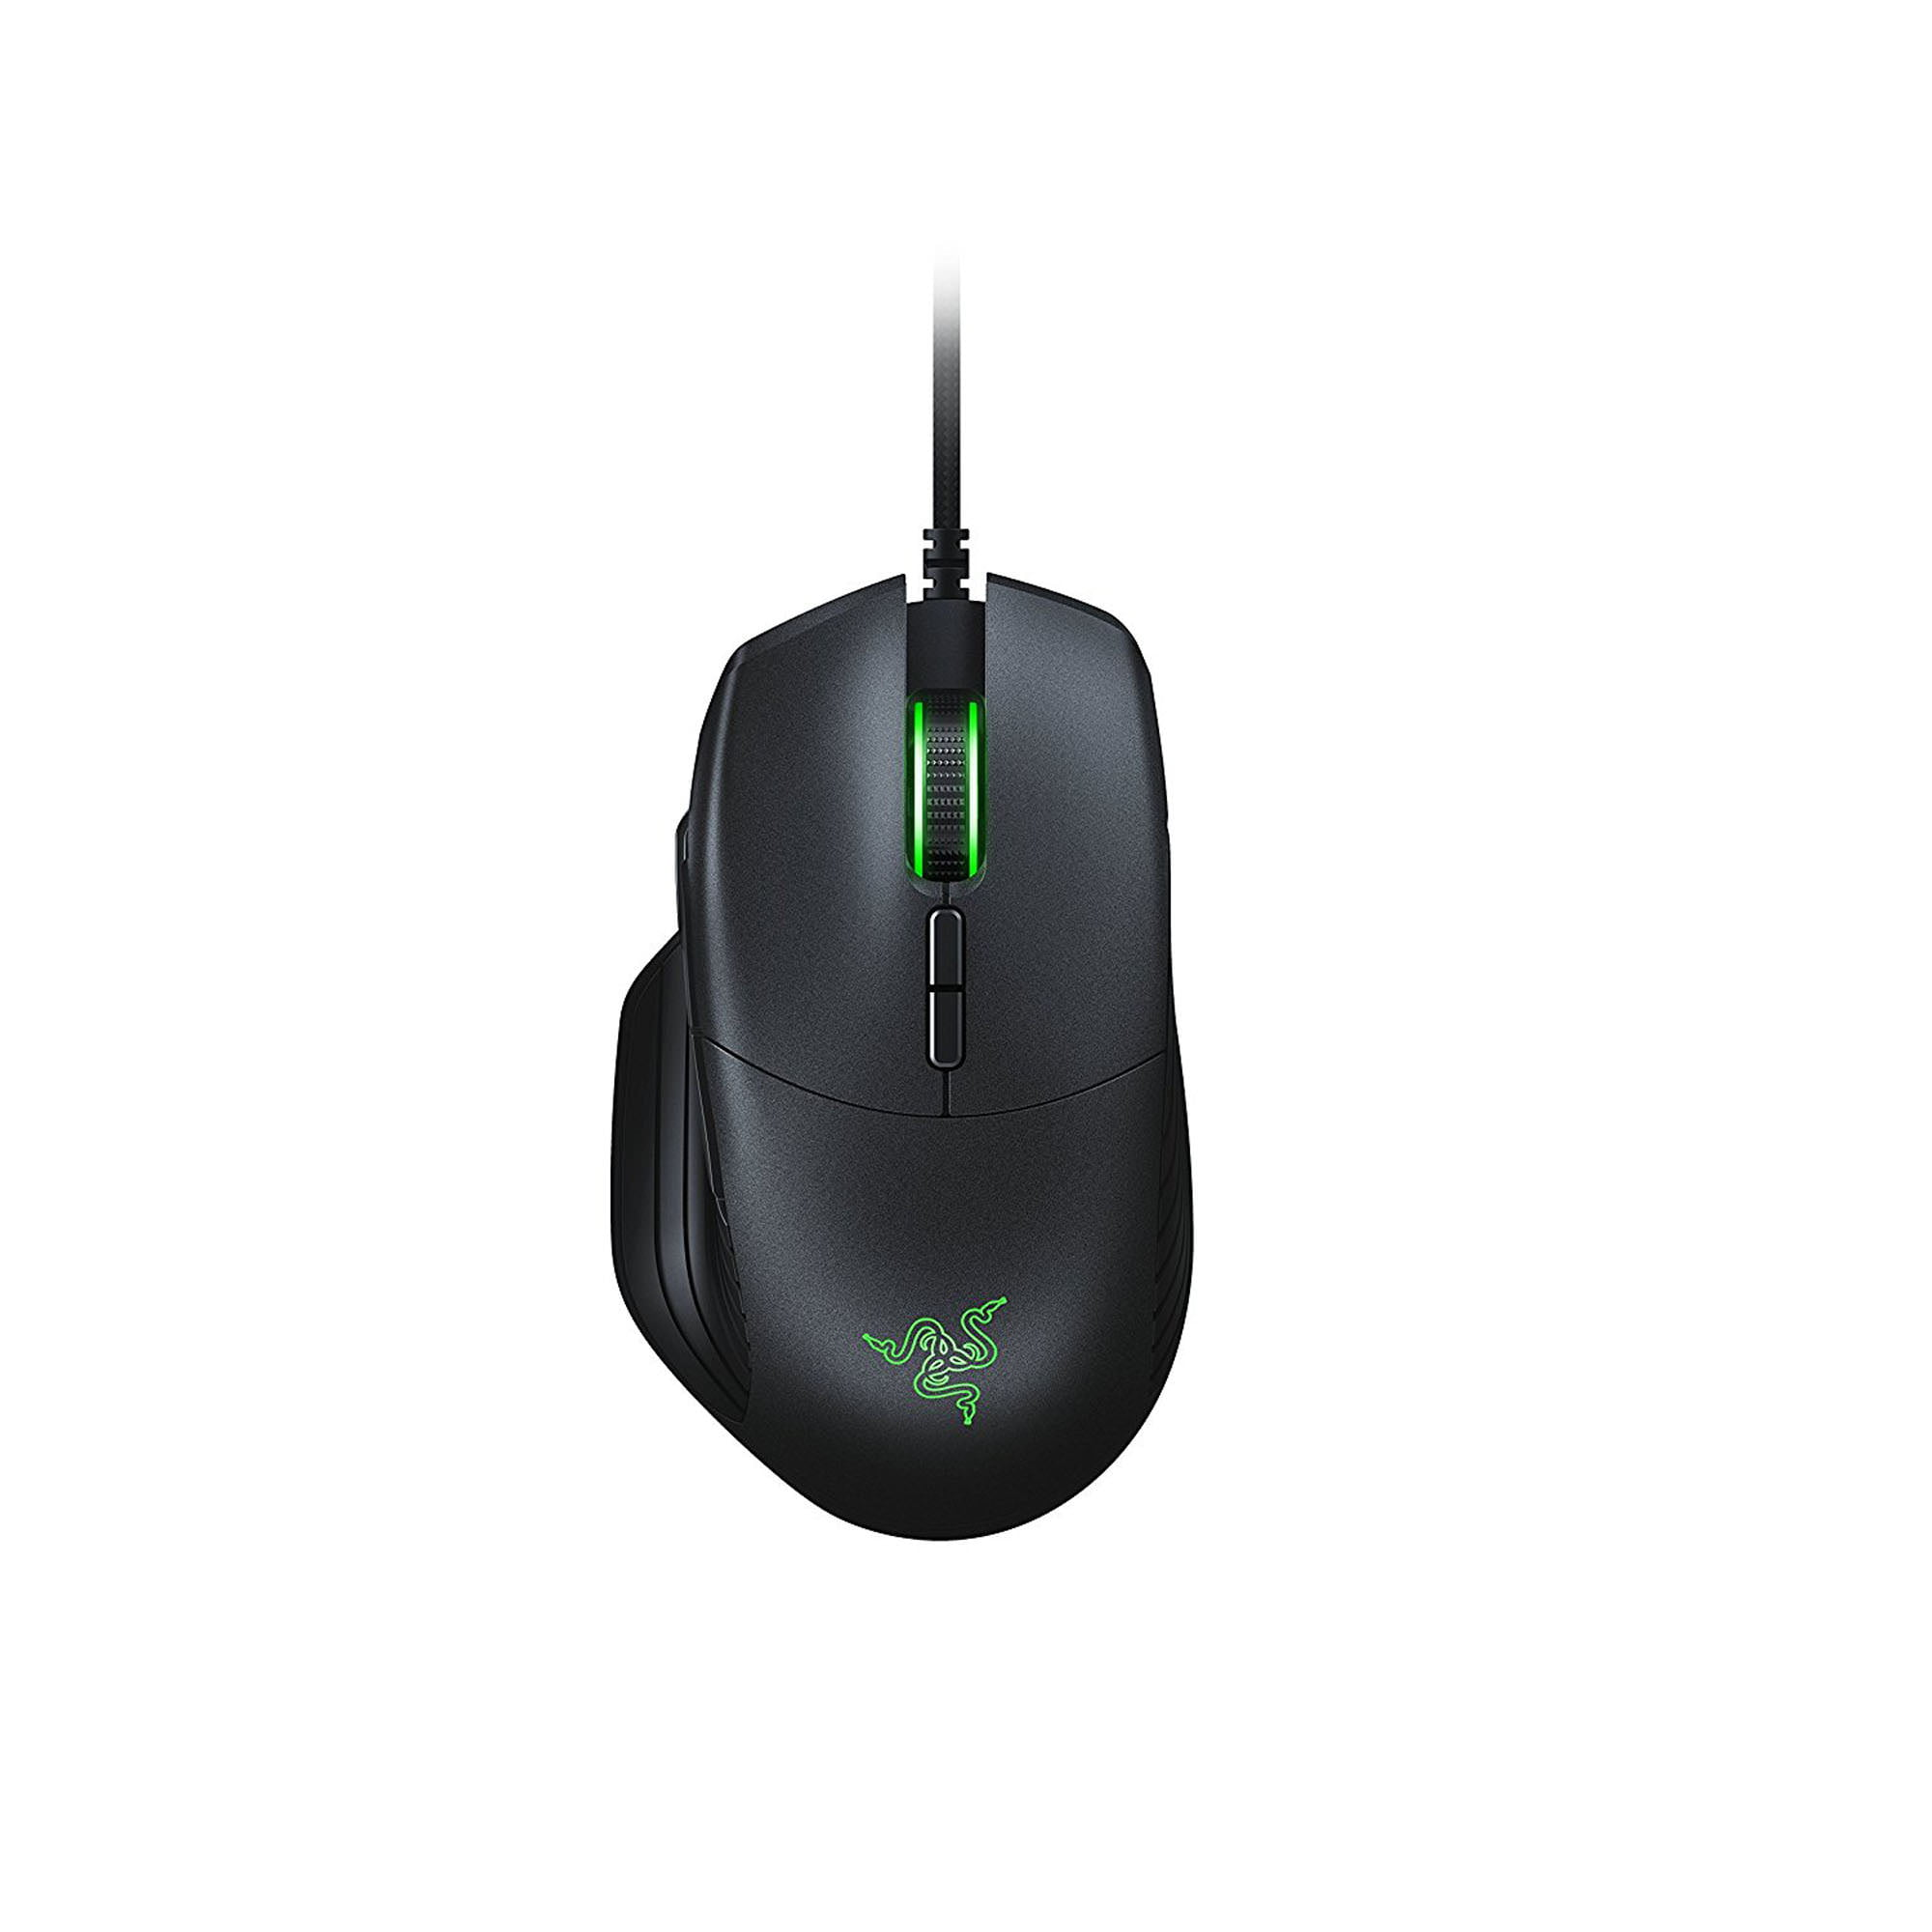 Razer Basilisk Chroma Enabled RGB FPS Gaming Mouse with DPI Clutch and Customizable Scroll Wheel Resistance by RAZER